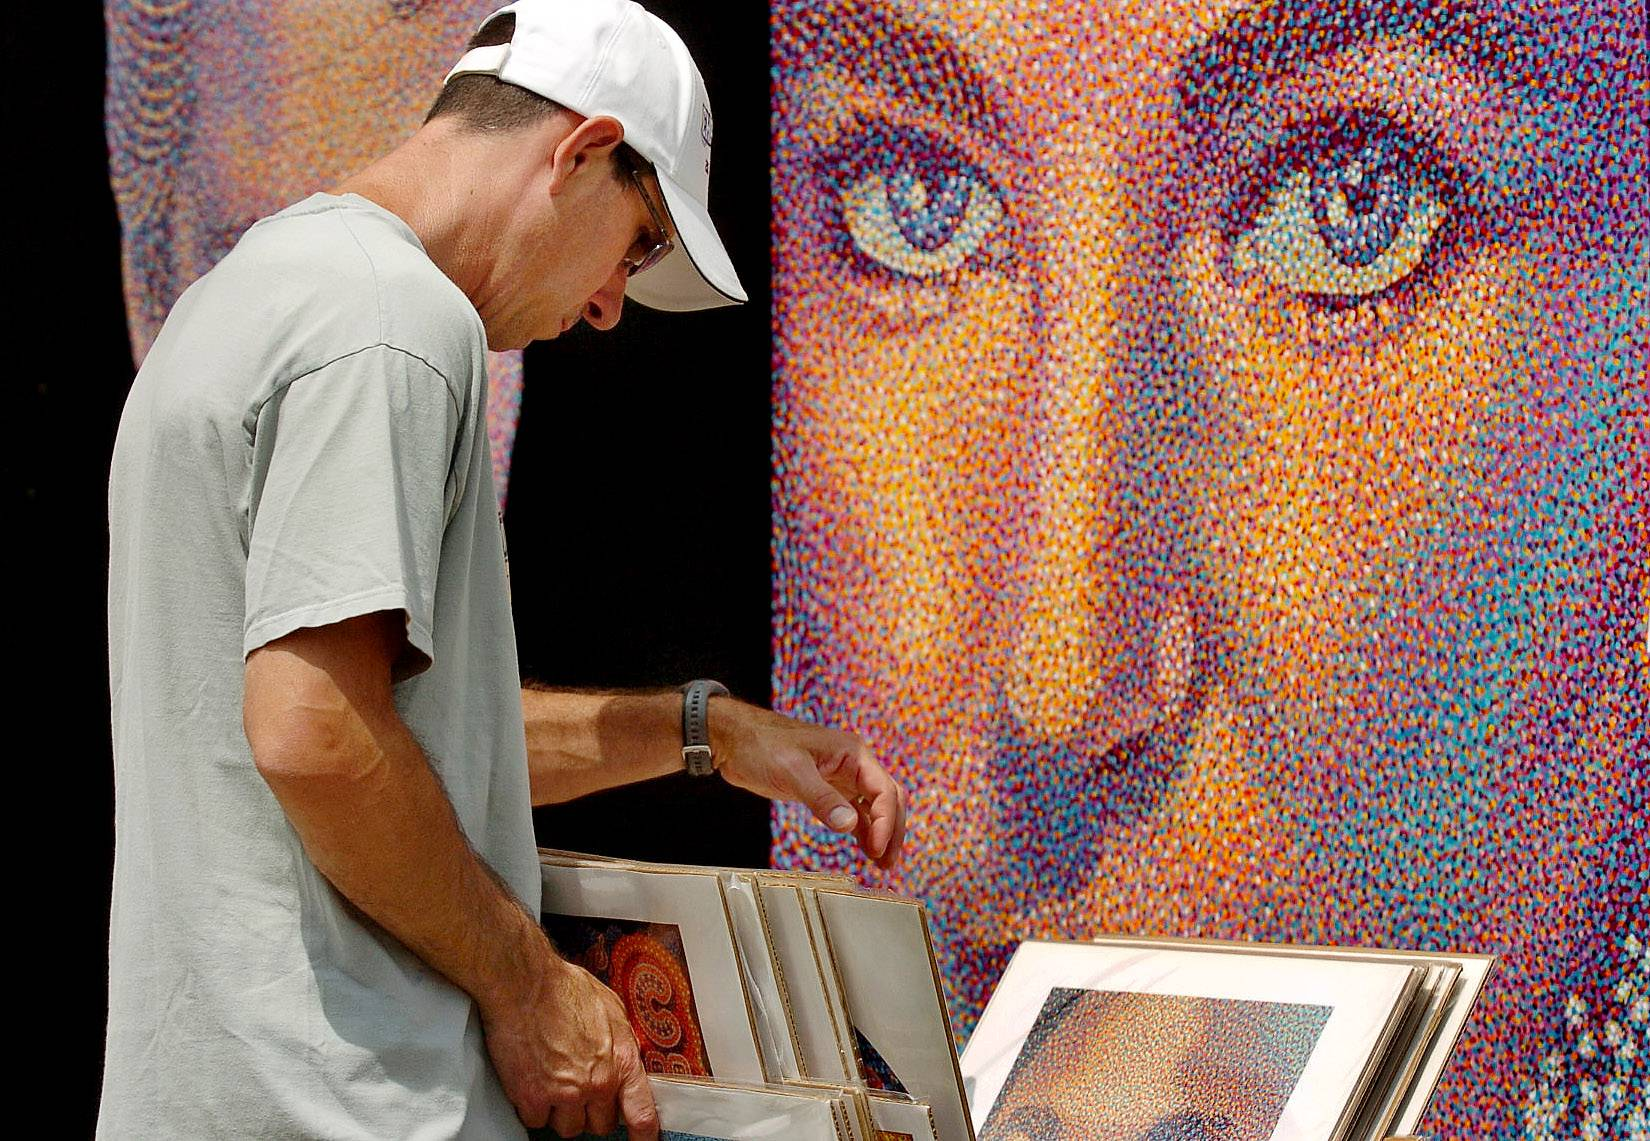 Steve Poklop of Palatine is under the watchful eyes of Elizabeth Taylor as he peruses the Pop Pointillism paintings of artist Tim McWilliams of Atlanta, Georgia, at a previous Lincolnshire Art Festival. This year's event will be Aug. 16 and 17.